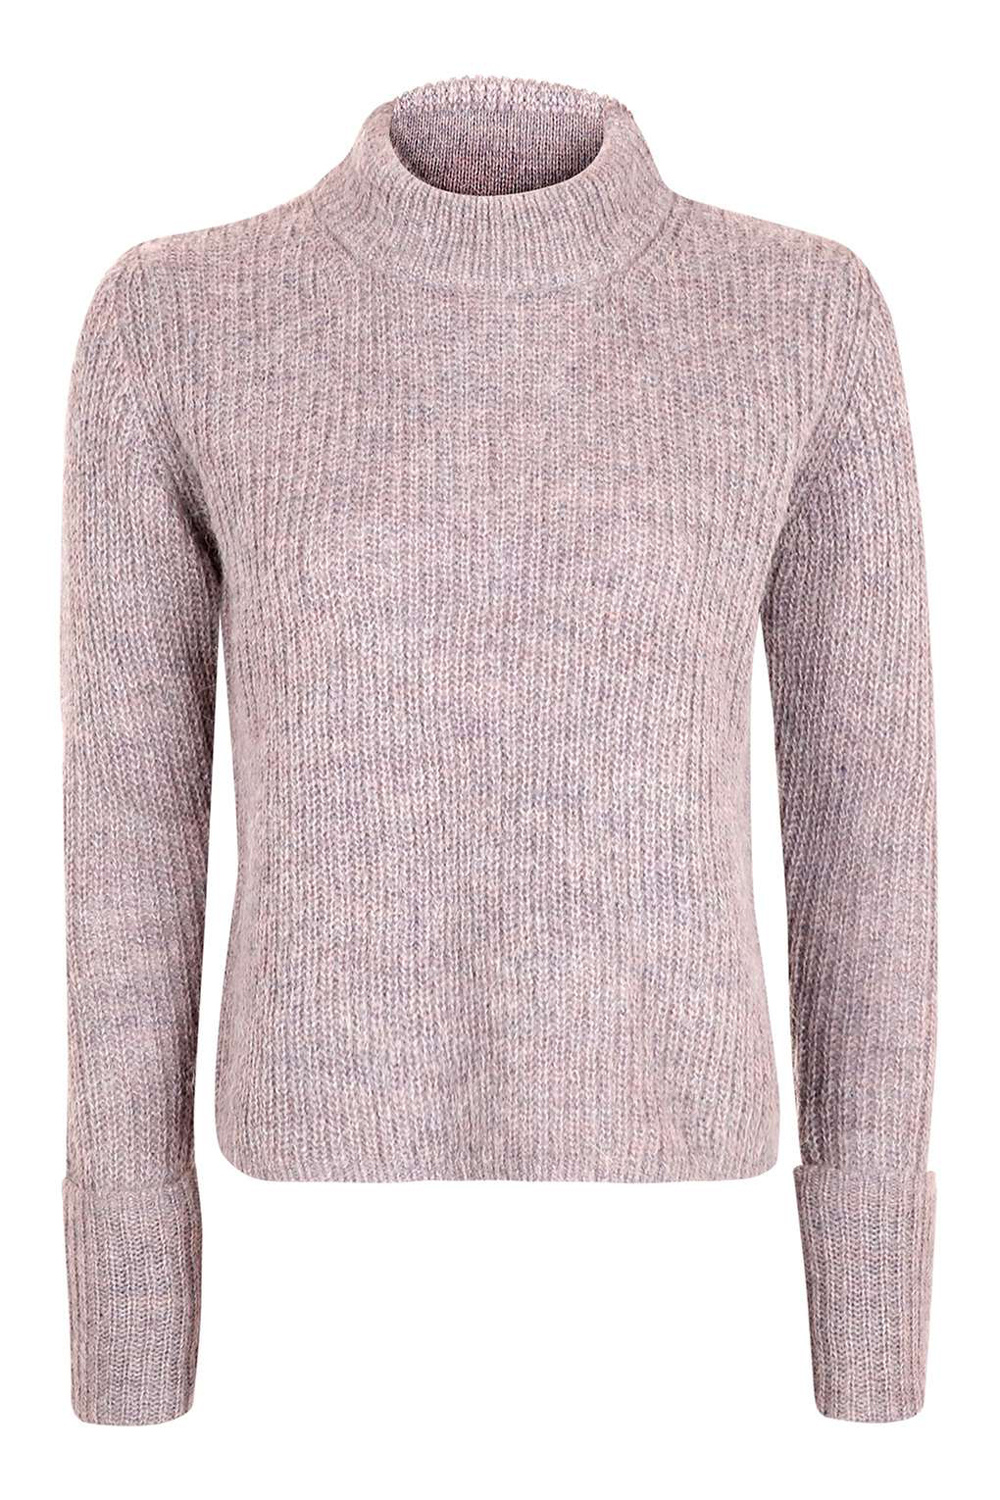 Sweater embed